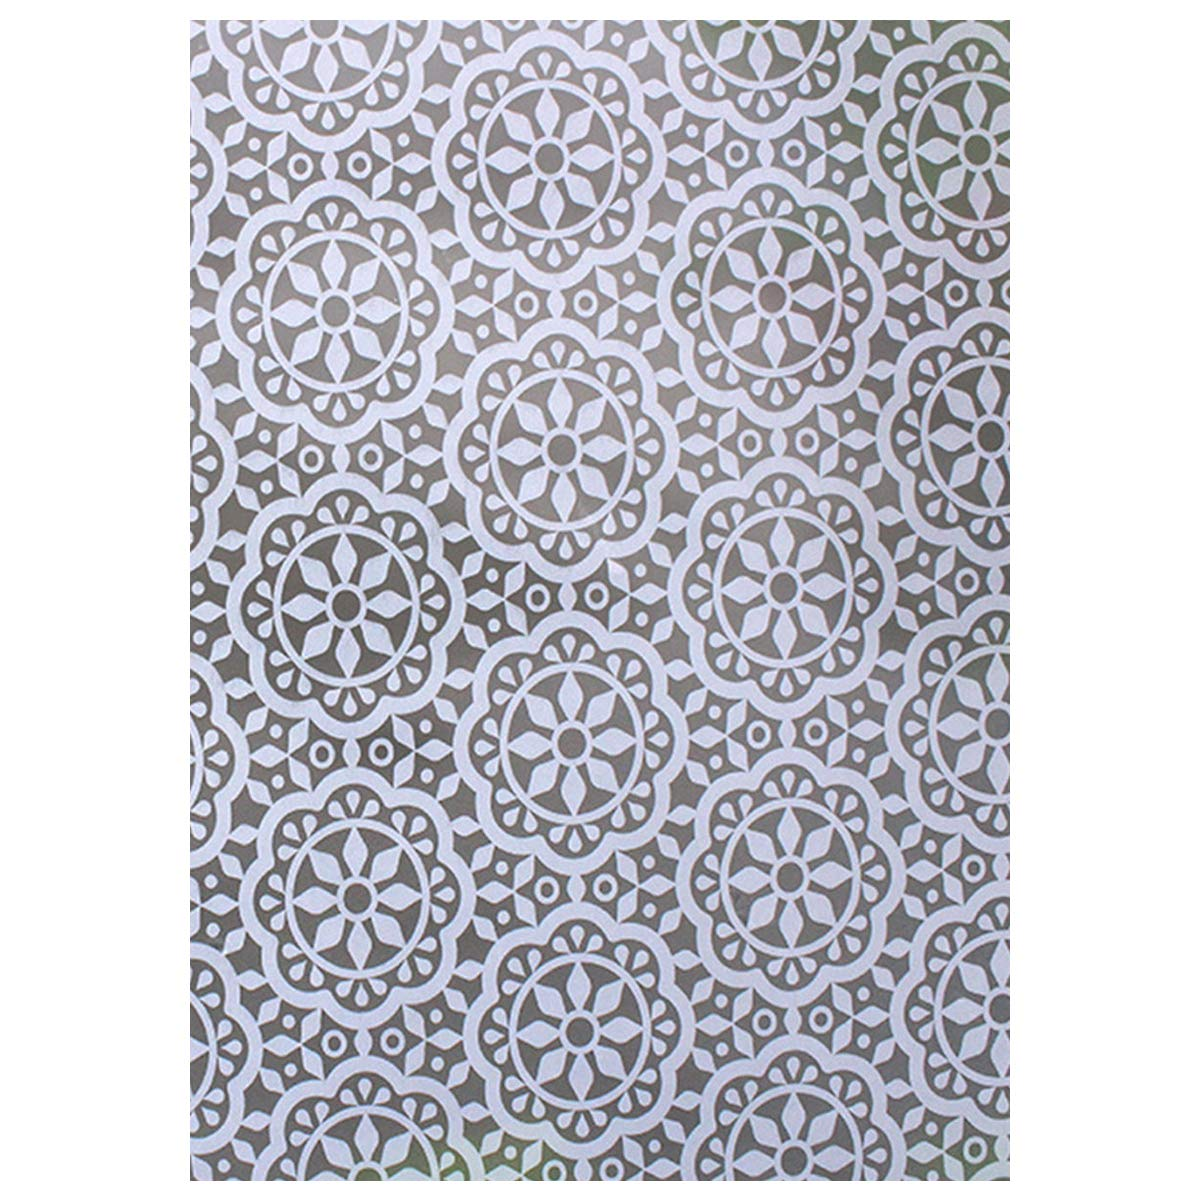 COOJA Privacy Window Film, Obscure Opaque Static Cling Window Film Self Adhesive Glass Film UV Protection Film Floral Decorative Window Stickers 45x200cm -Geometric Pattern